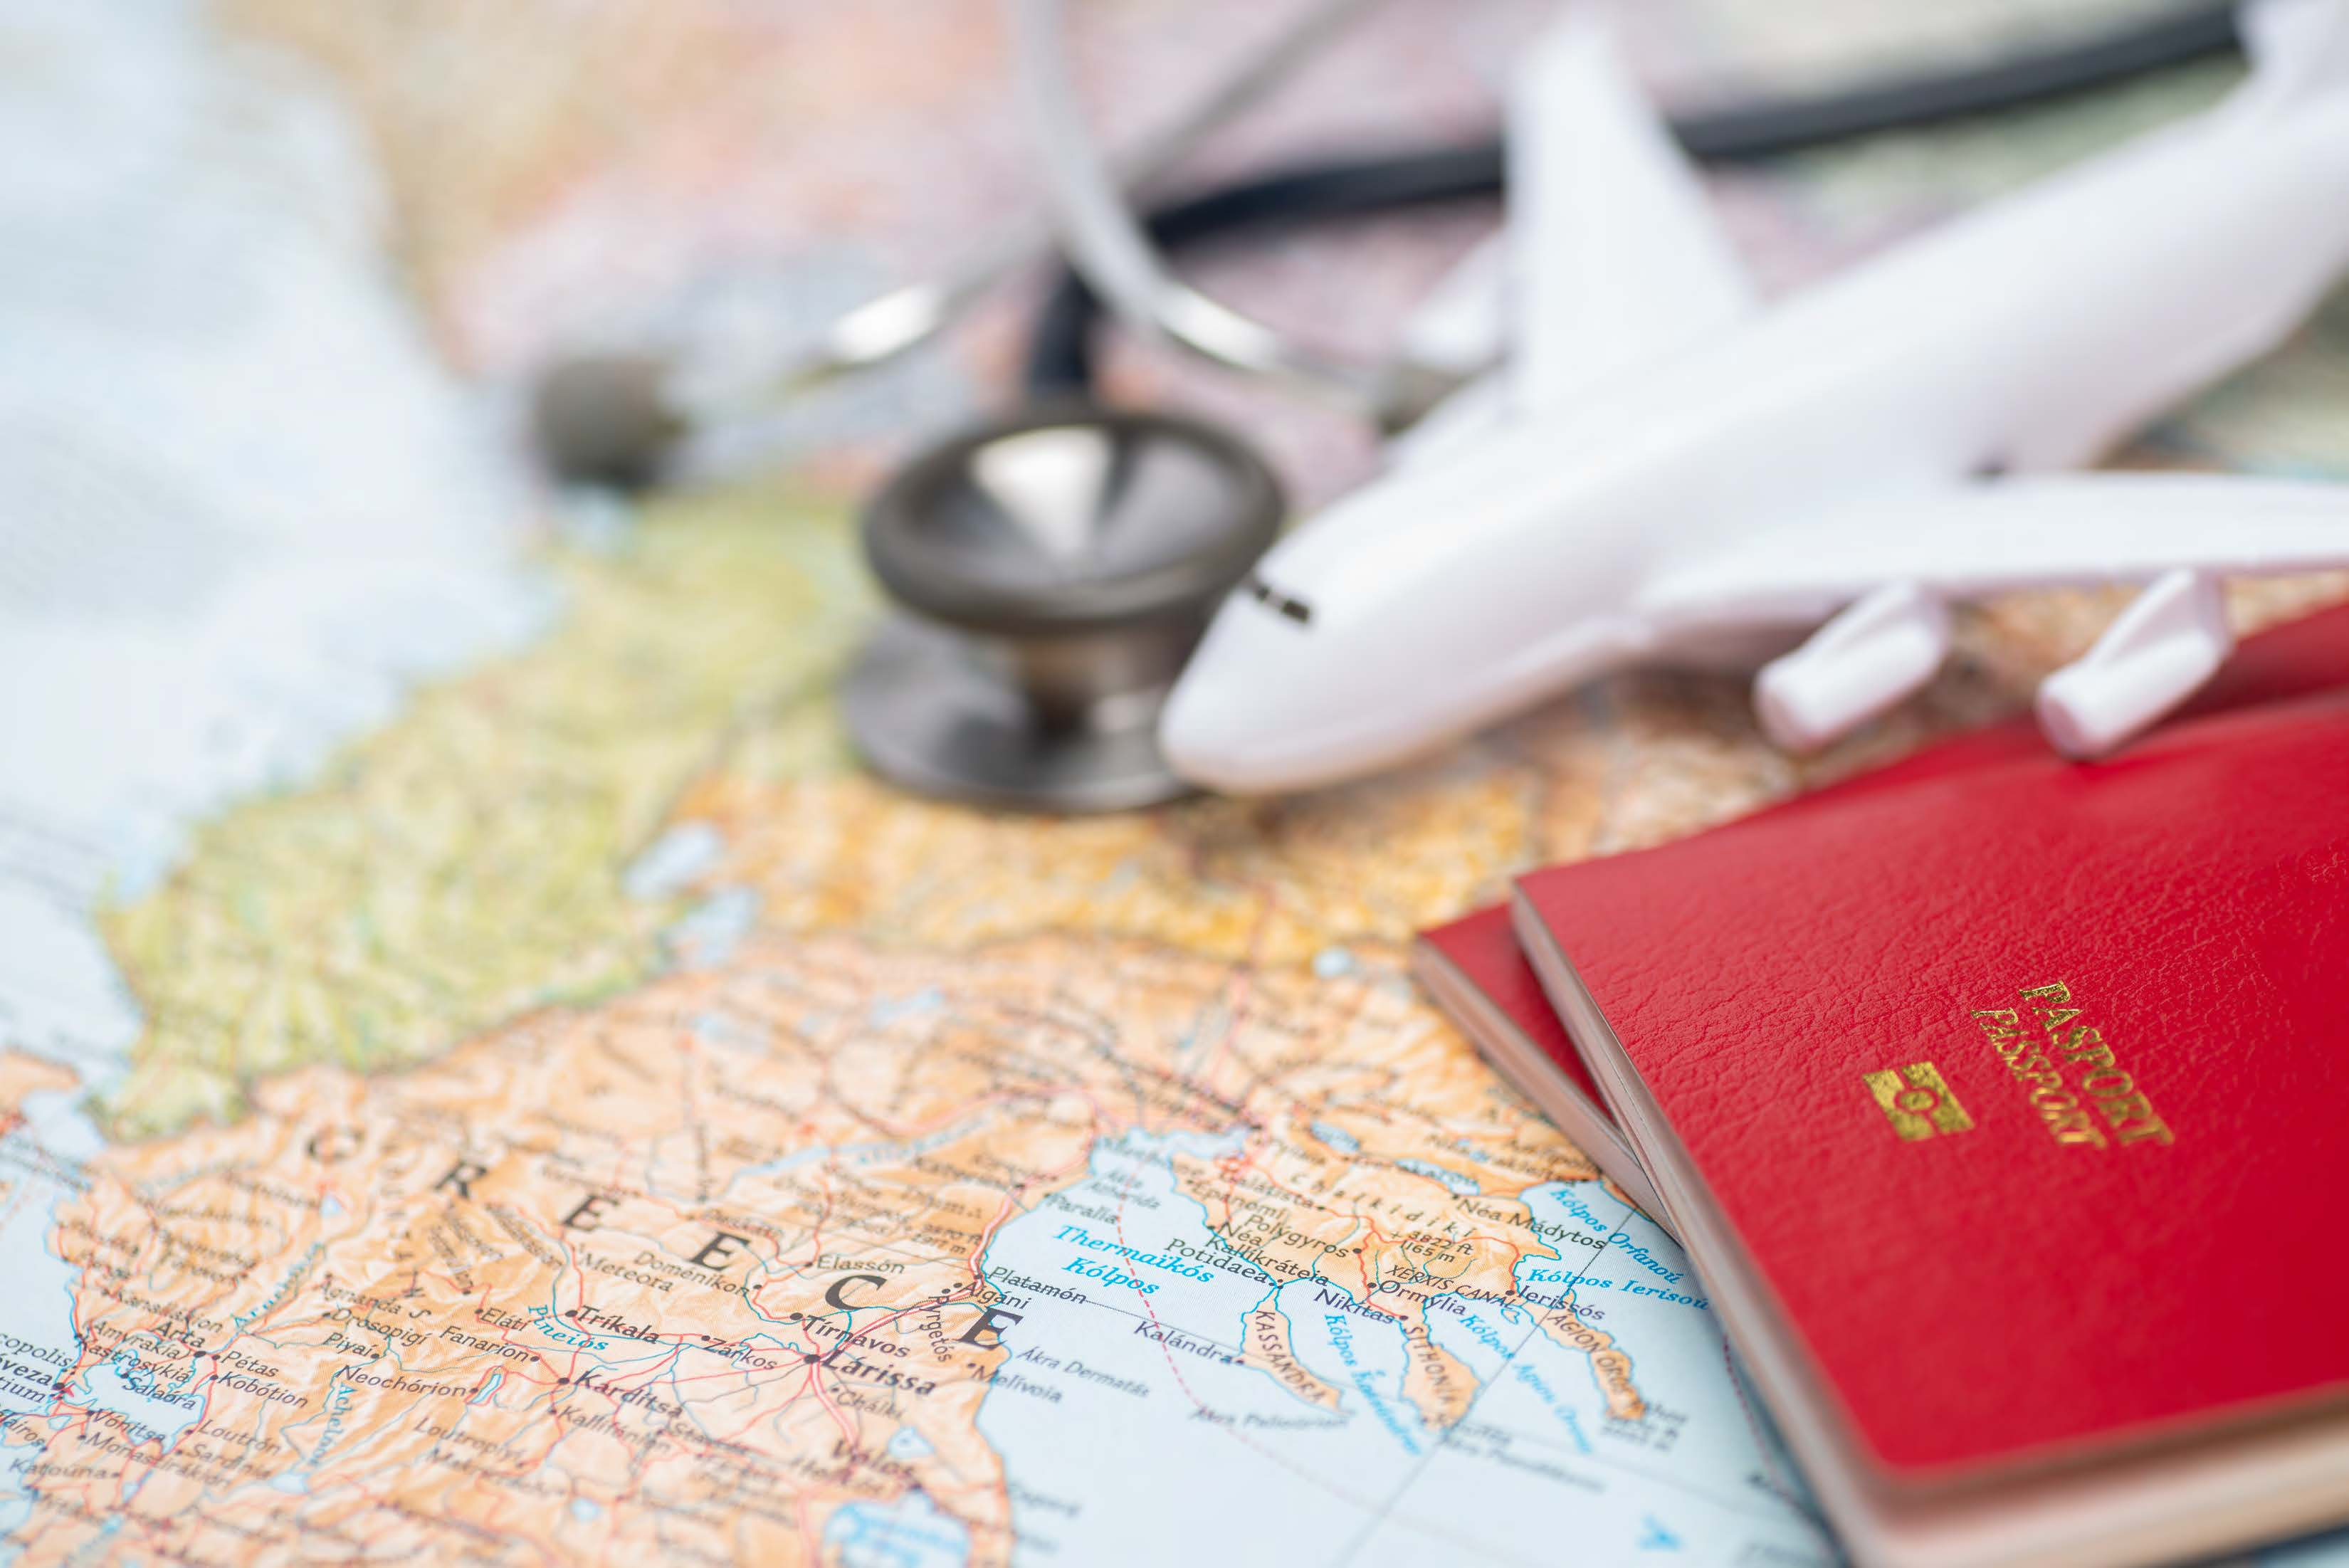 Global mobility health and travel